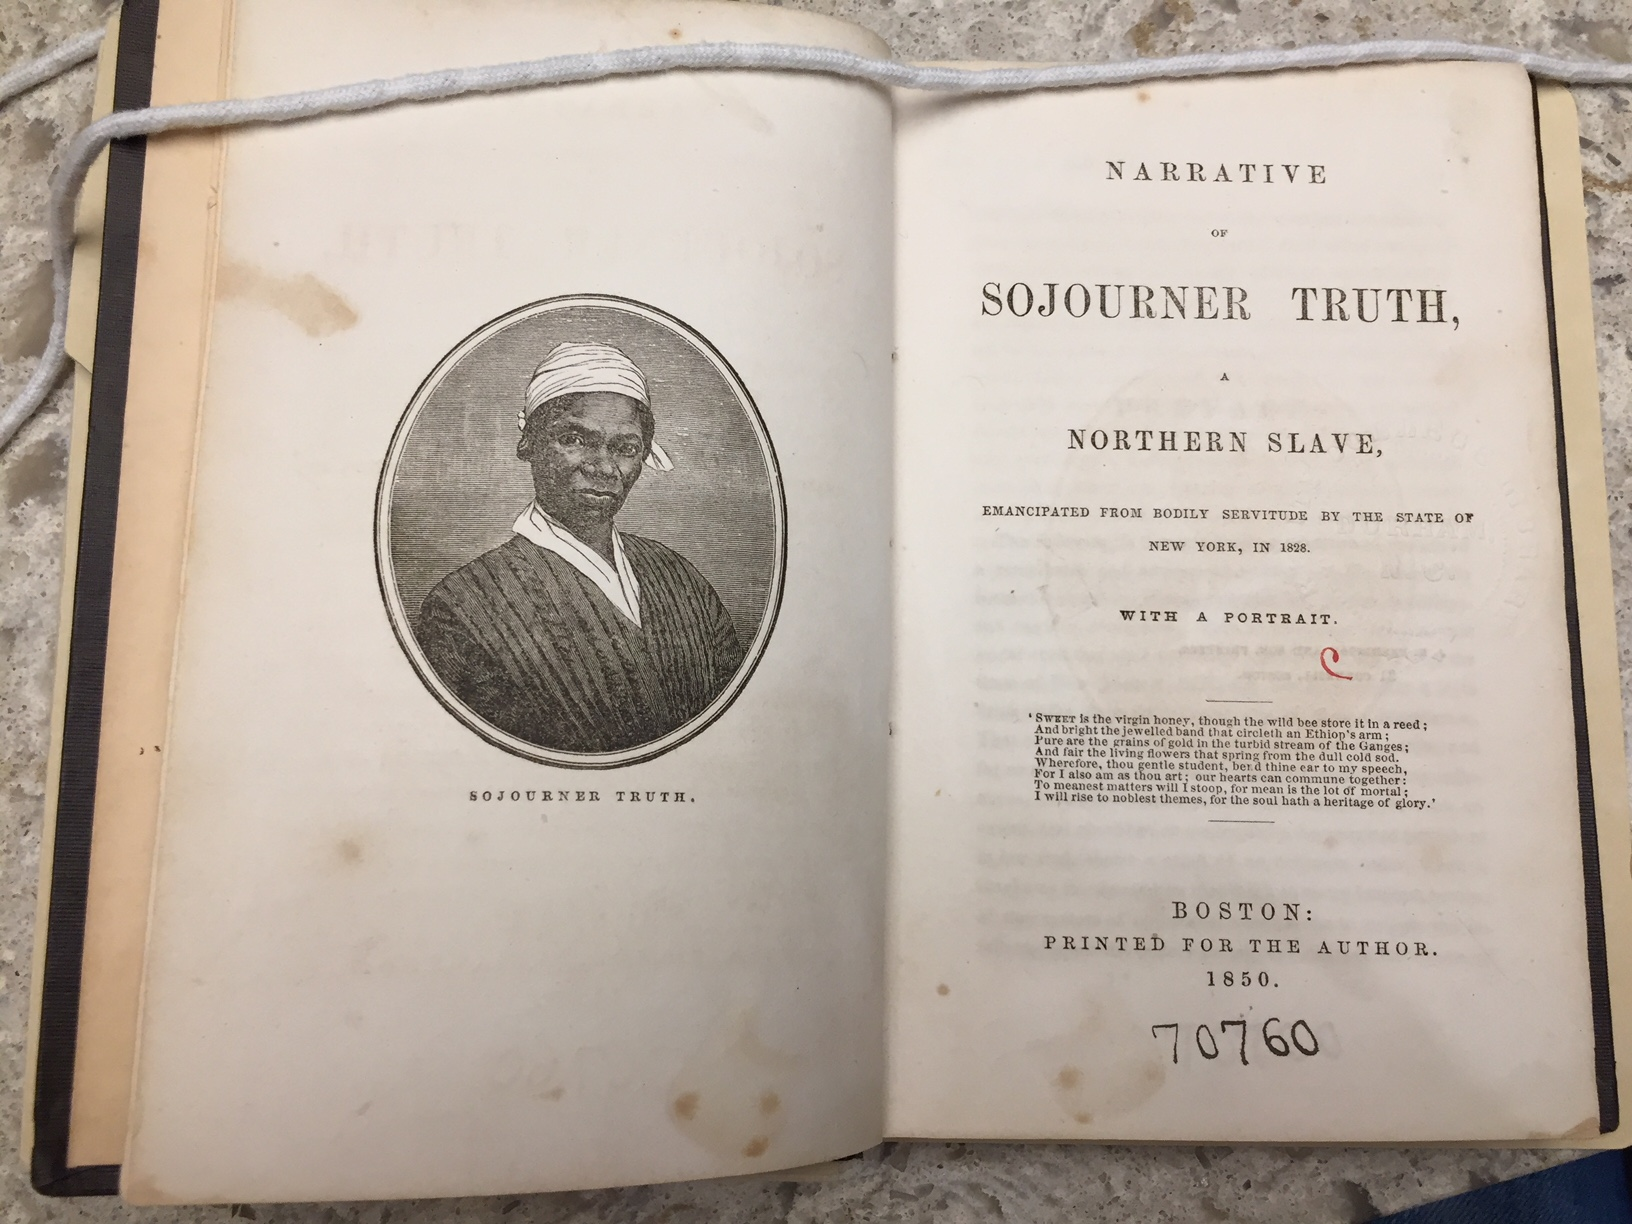 Narrative of Sojourner Truth title page